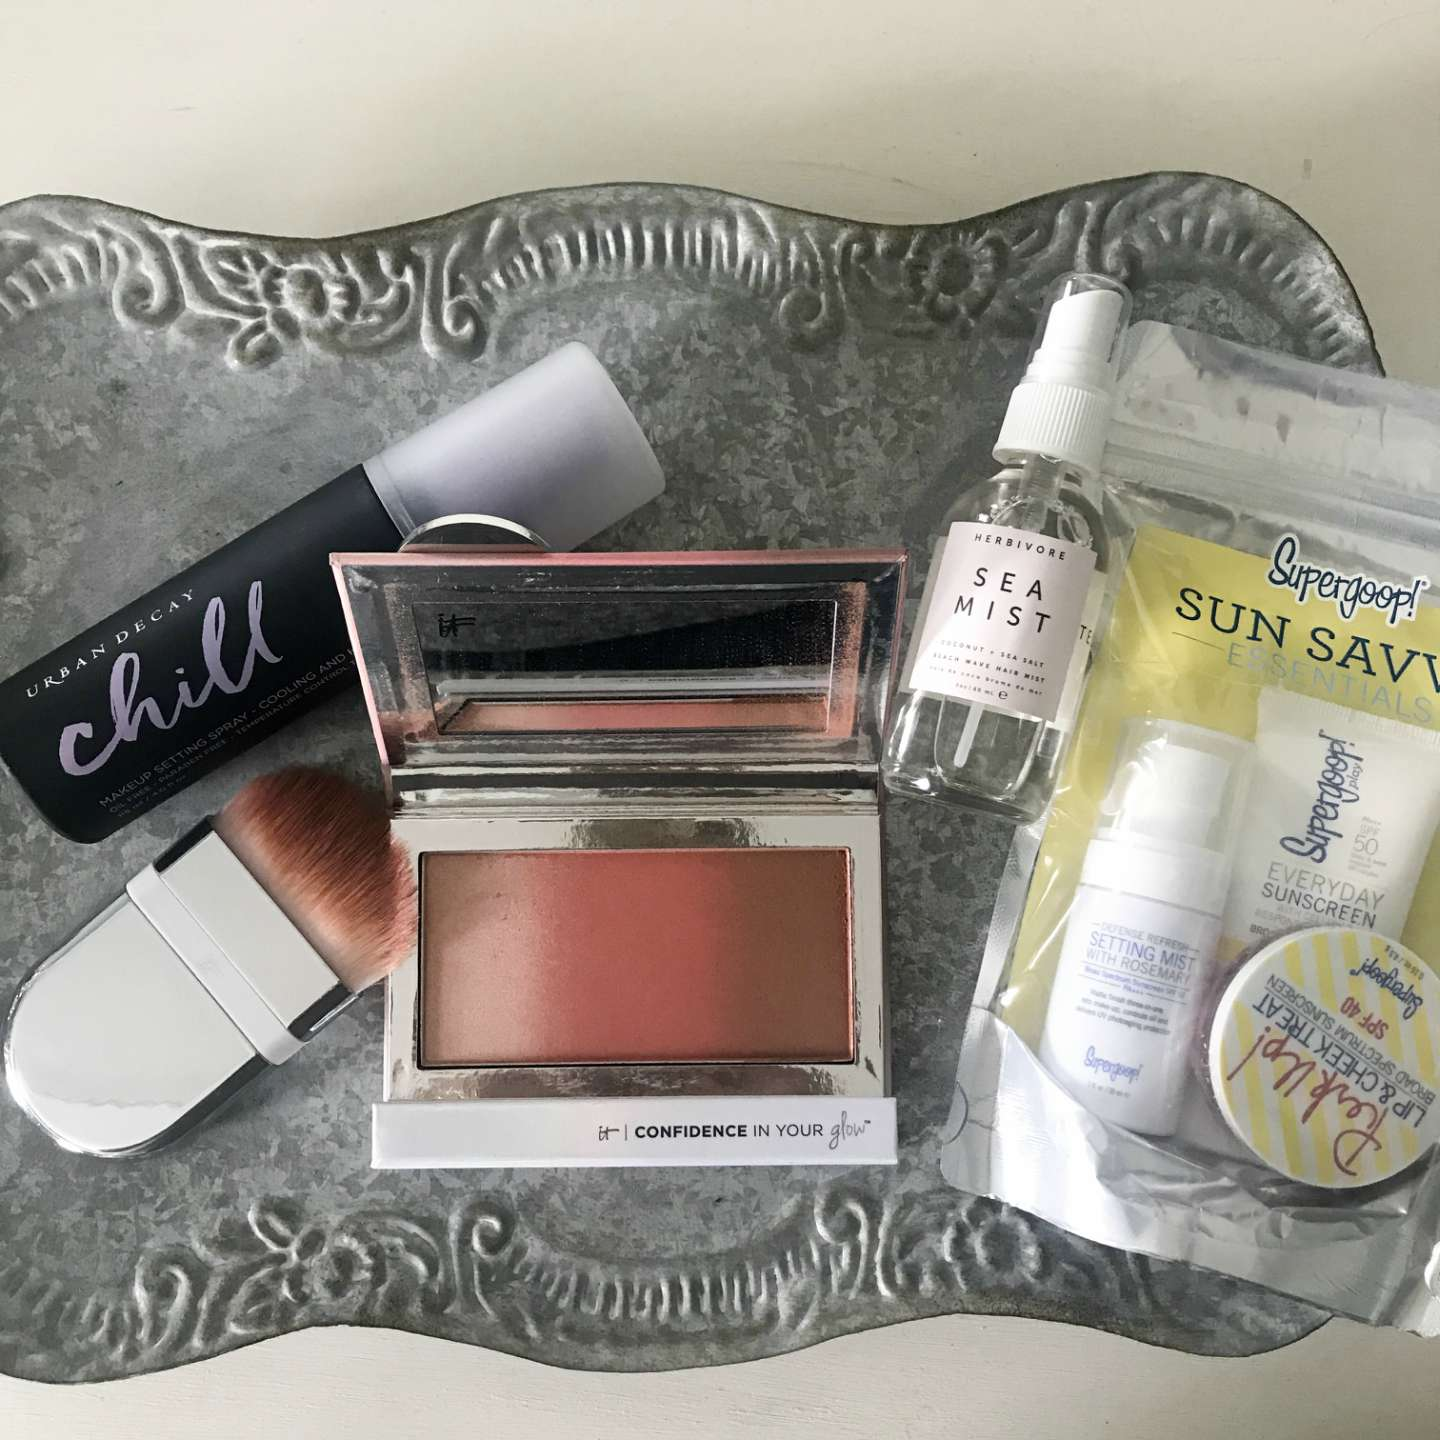 Current Beauty Favorites for Summer - I'm Fixin' To - @mbg0112